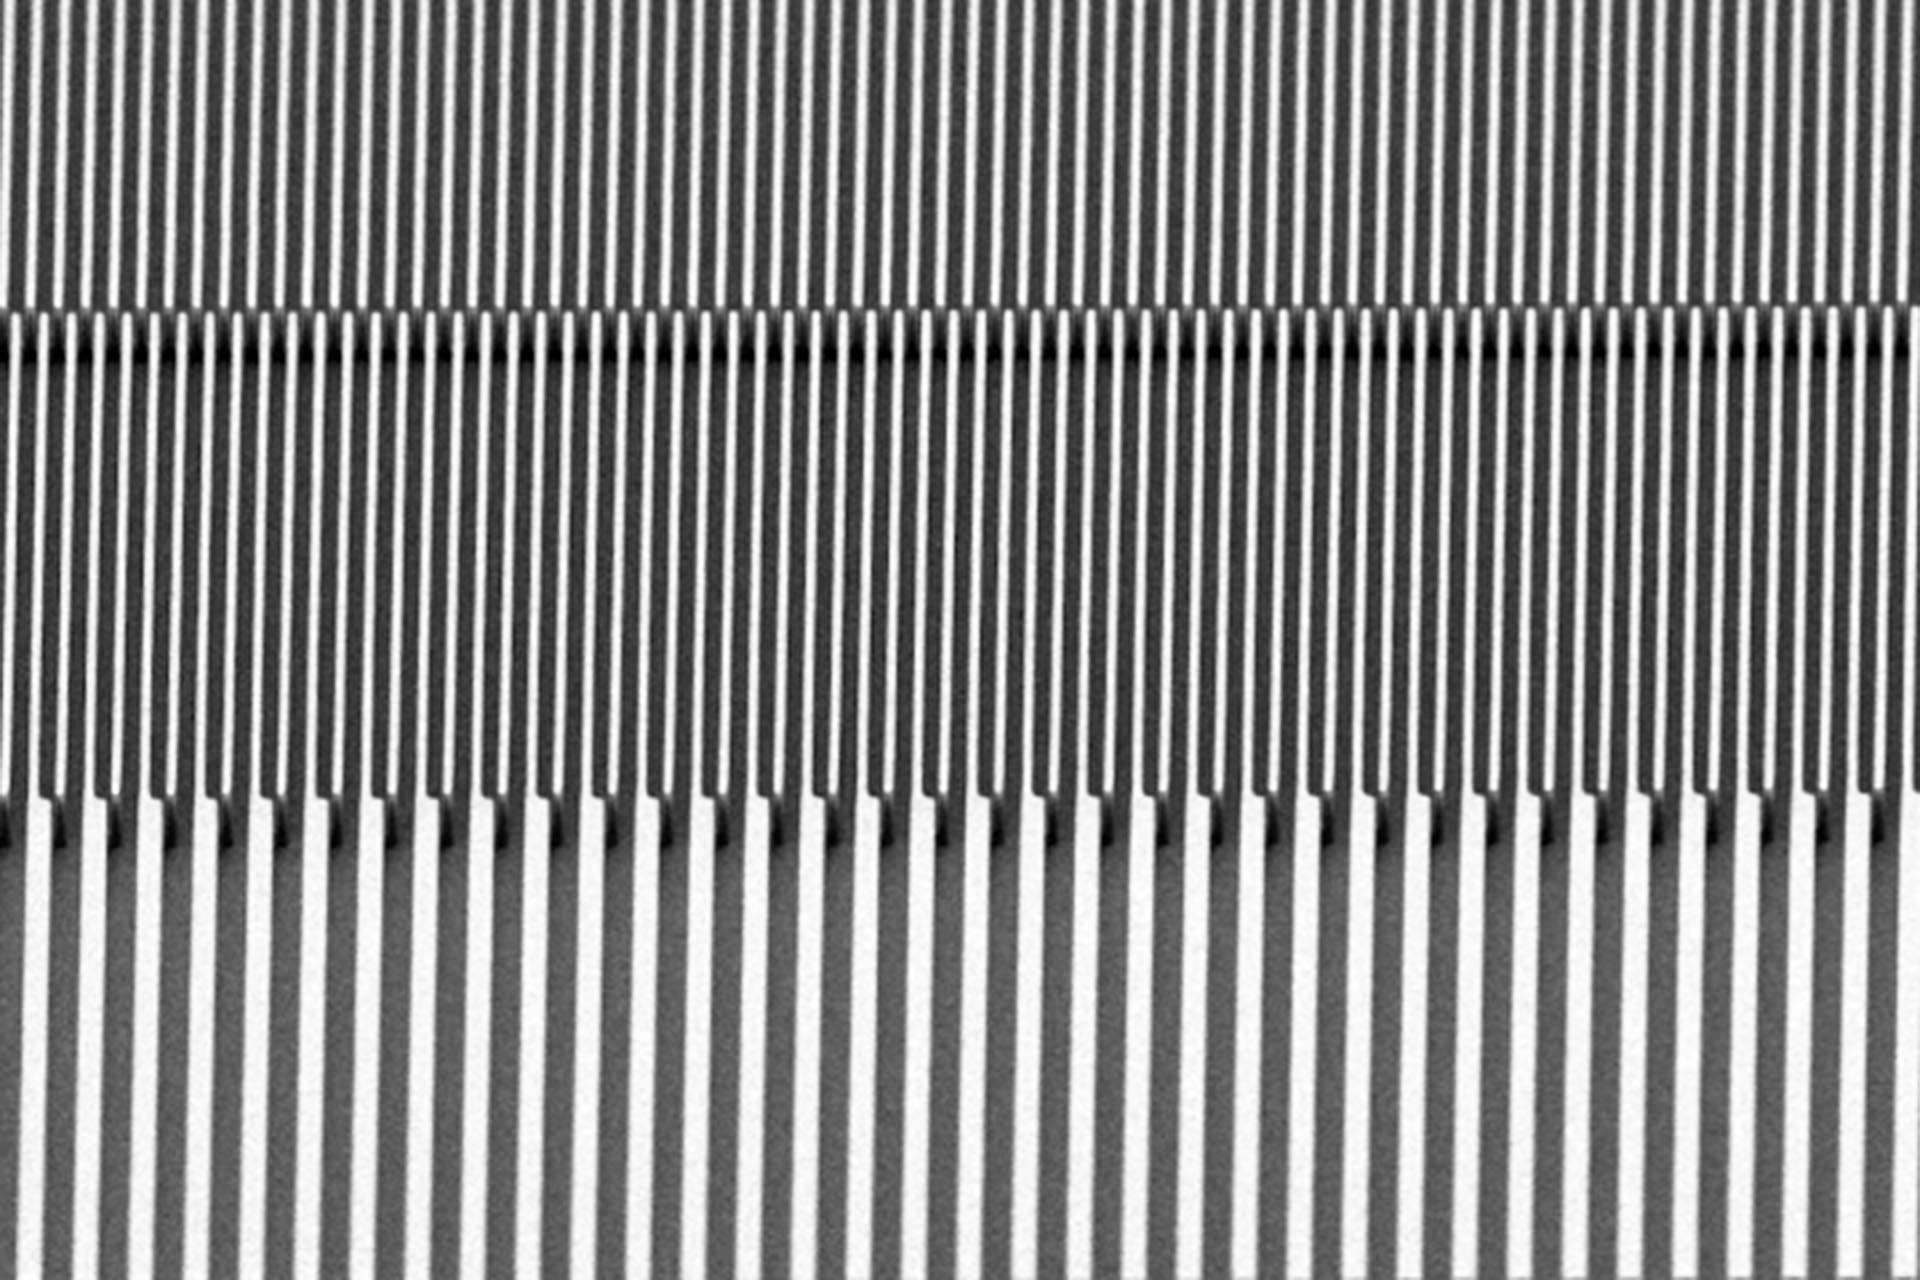 Exposure of 10-µm-thick resist (AZ 9260) with 2 µm and 4 µm lines and spaces. (Courtesy of CMi EPFL)